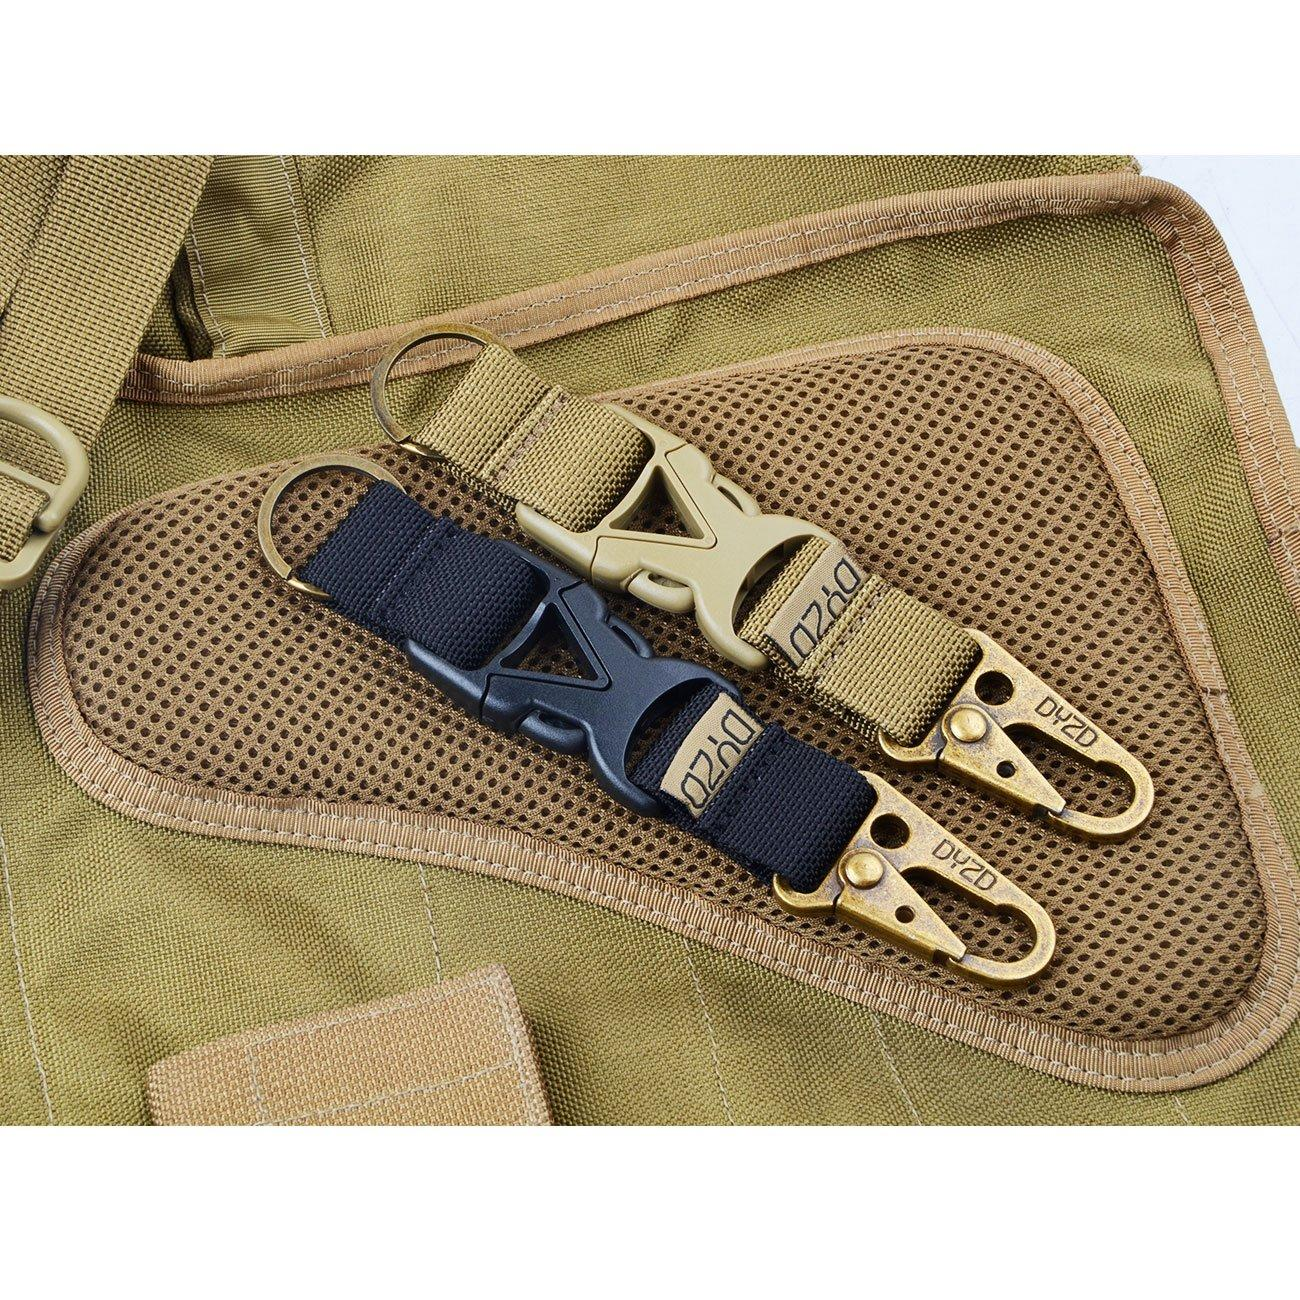 Details about  /Tactical Belt Keychain Nylon Outdoor Hook Quick Release YuDuI liu12 etgy